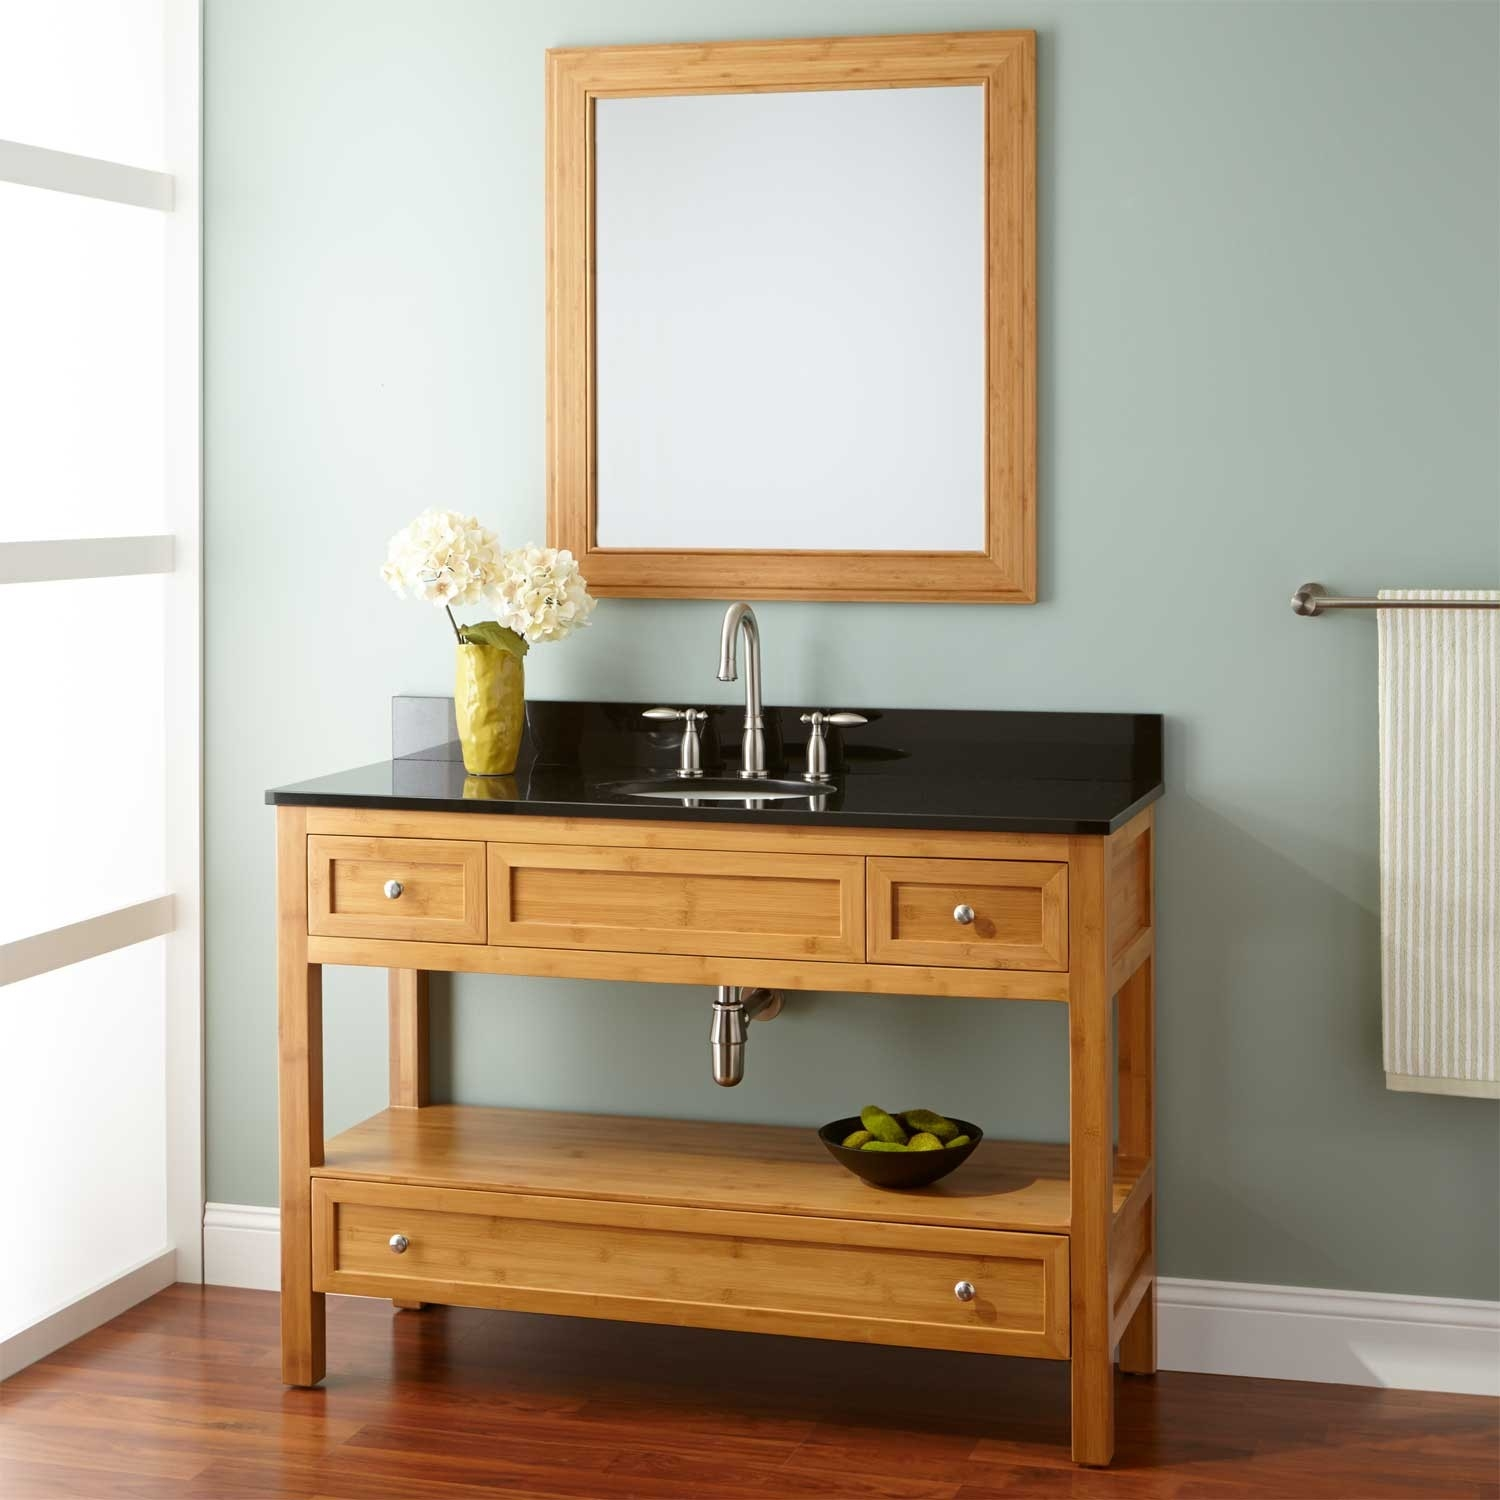 Bamboo Bathroom Vanity Mirror1500 X 1500